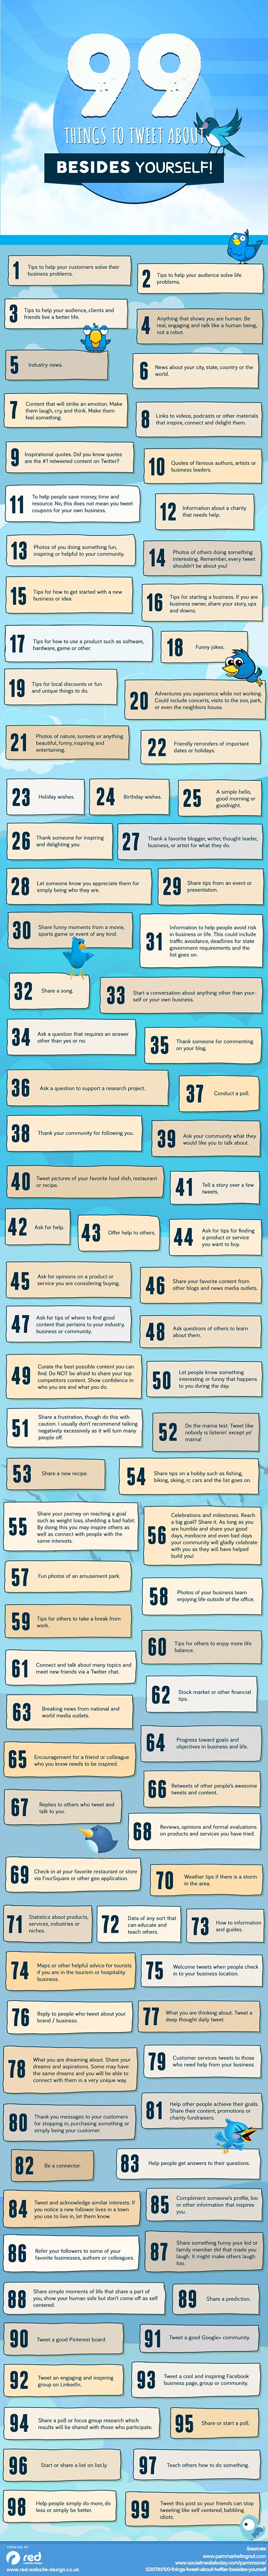 99 Things you can tweet about on twitter besides yourself. | Social Media Strategy + Tips